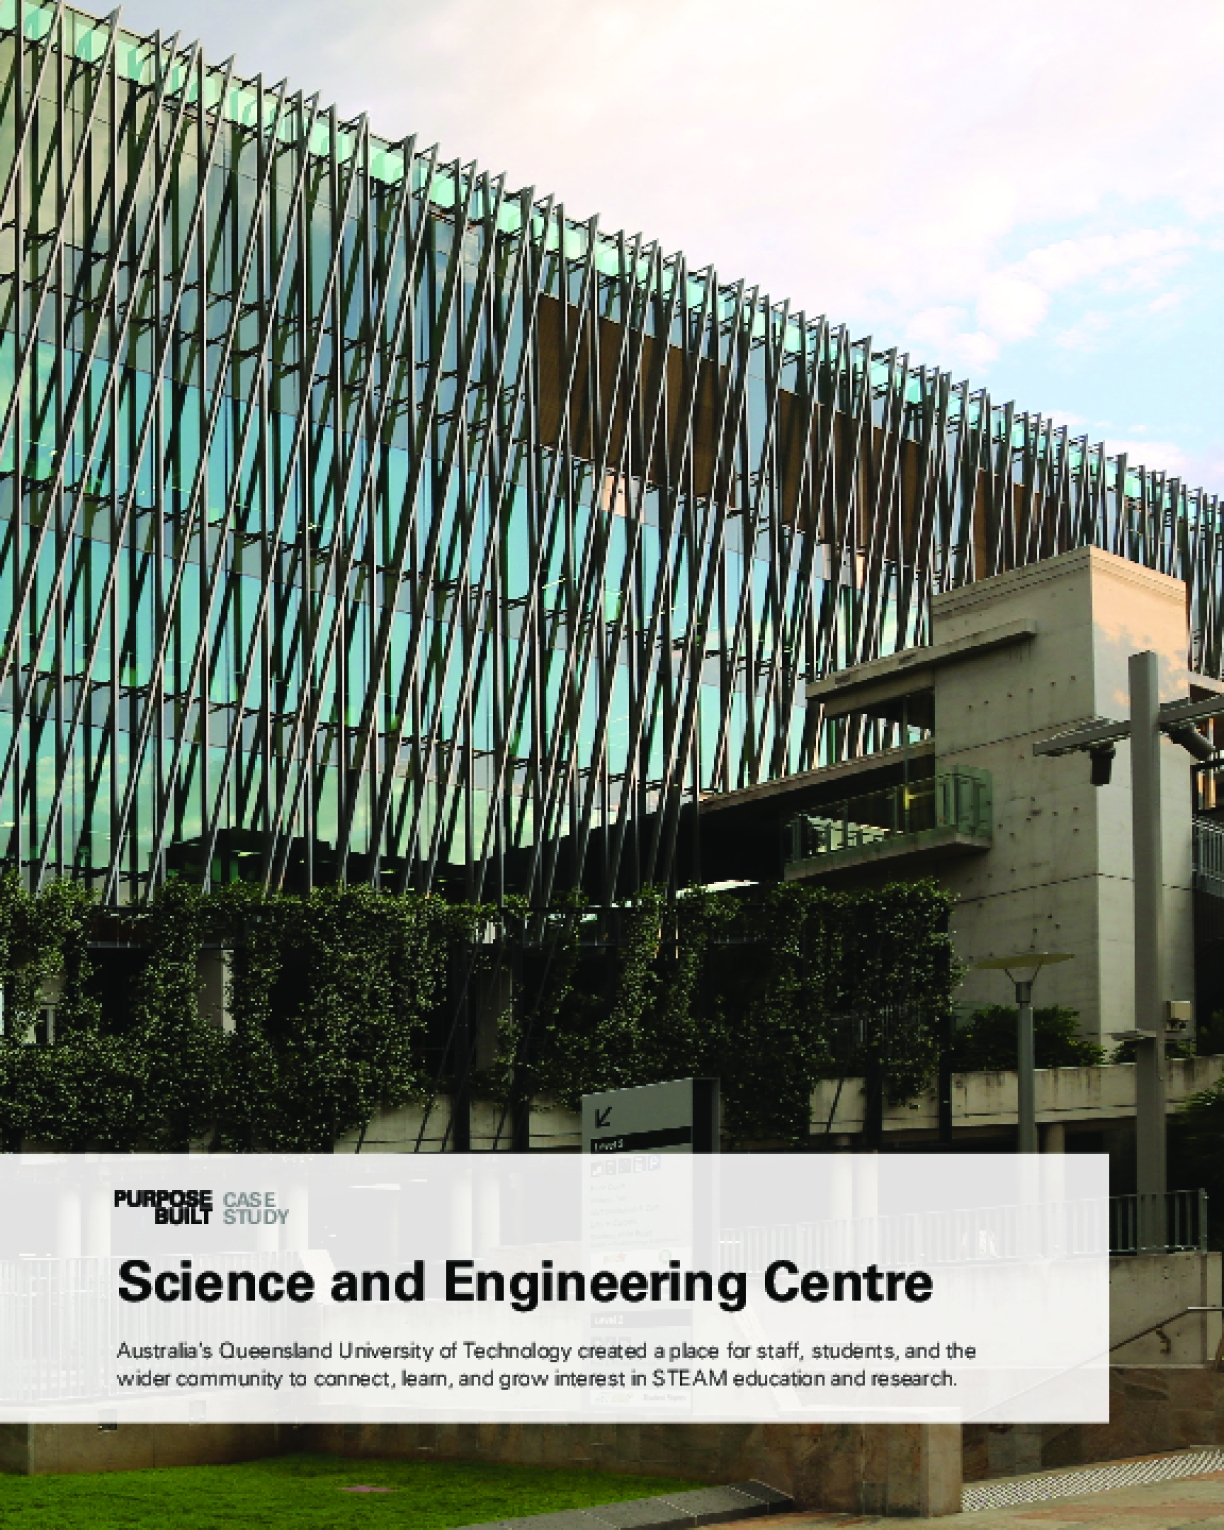 Purpose Built Case Study: Science and Engineering Centre